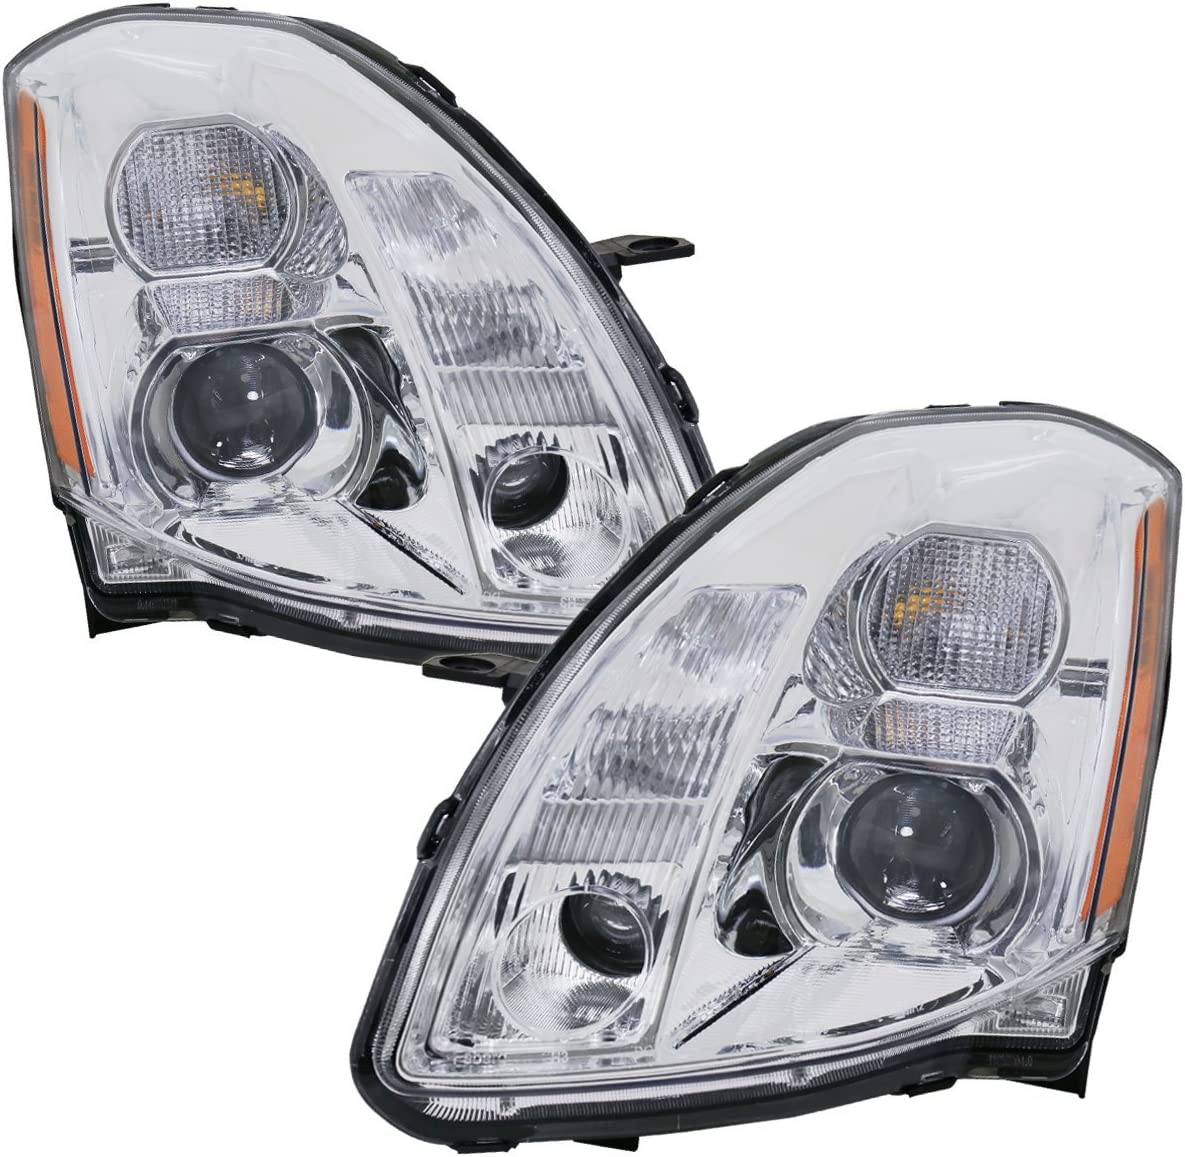 For 2004-2006 Nissan Maxima Jdm Headlights Projector Chrome Housing Amber Clear